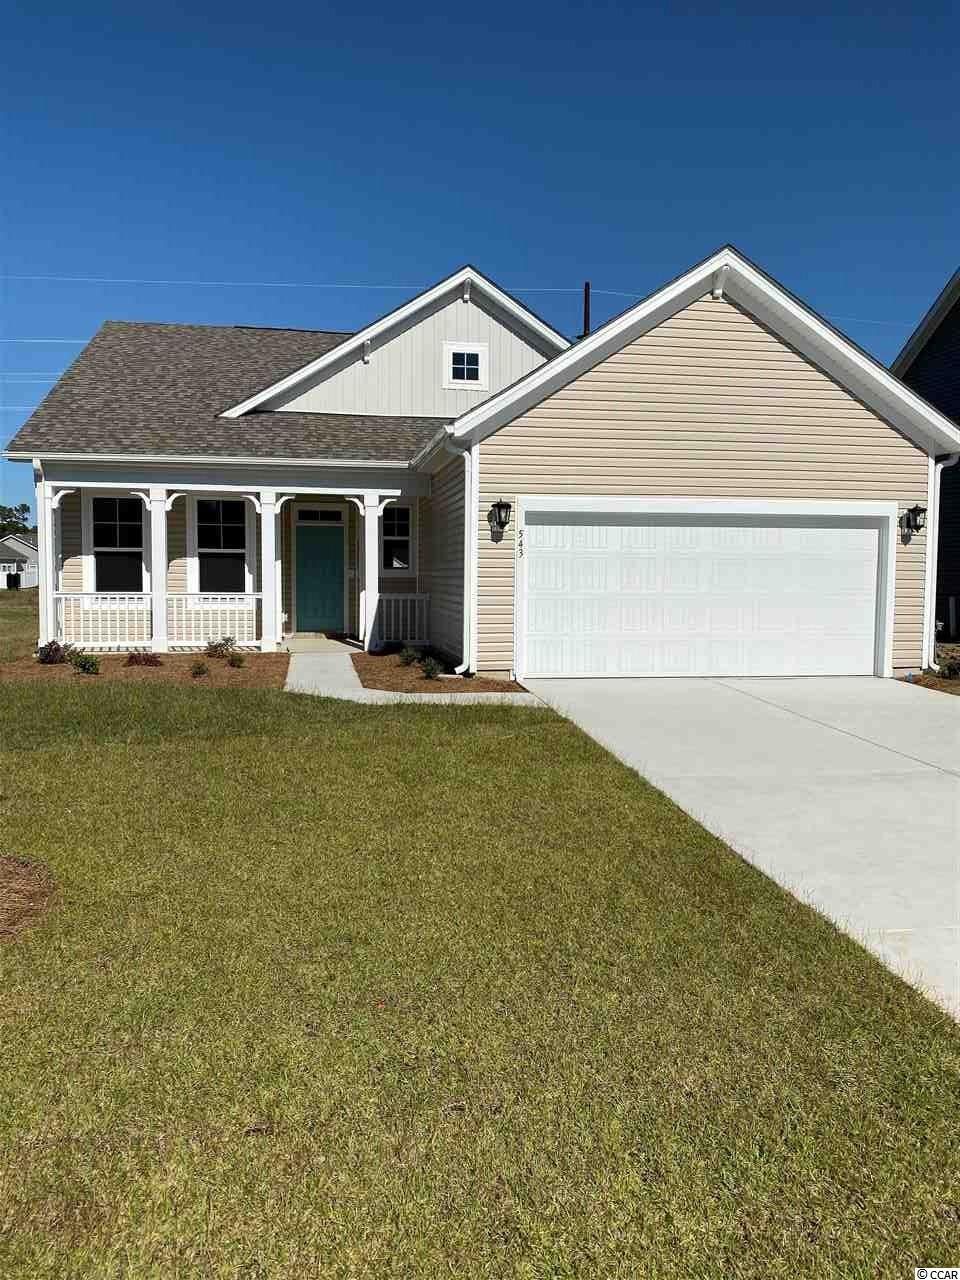 Under contract! Welcome to Surfside Plantation, a charming coastal Beazer Homes community with Natural Gas and is located 3 miles to the beach. This home features 3 BD, 2 BA, Carolina Room, and 2-car garage. Pictures shown are from previously built homes. For more information, please visit the on-site sales office.